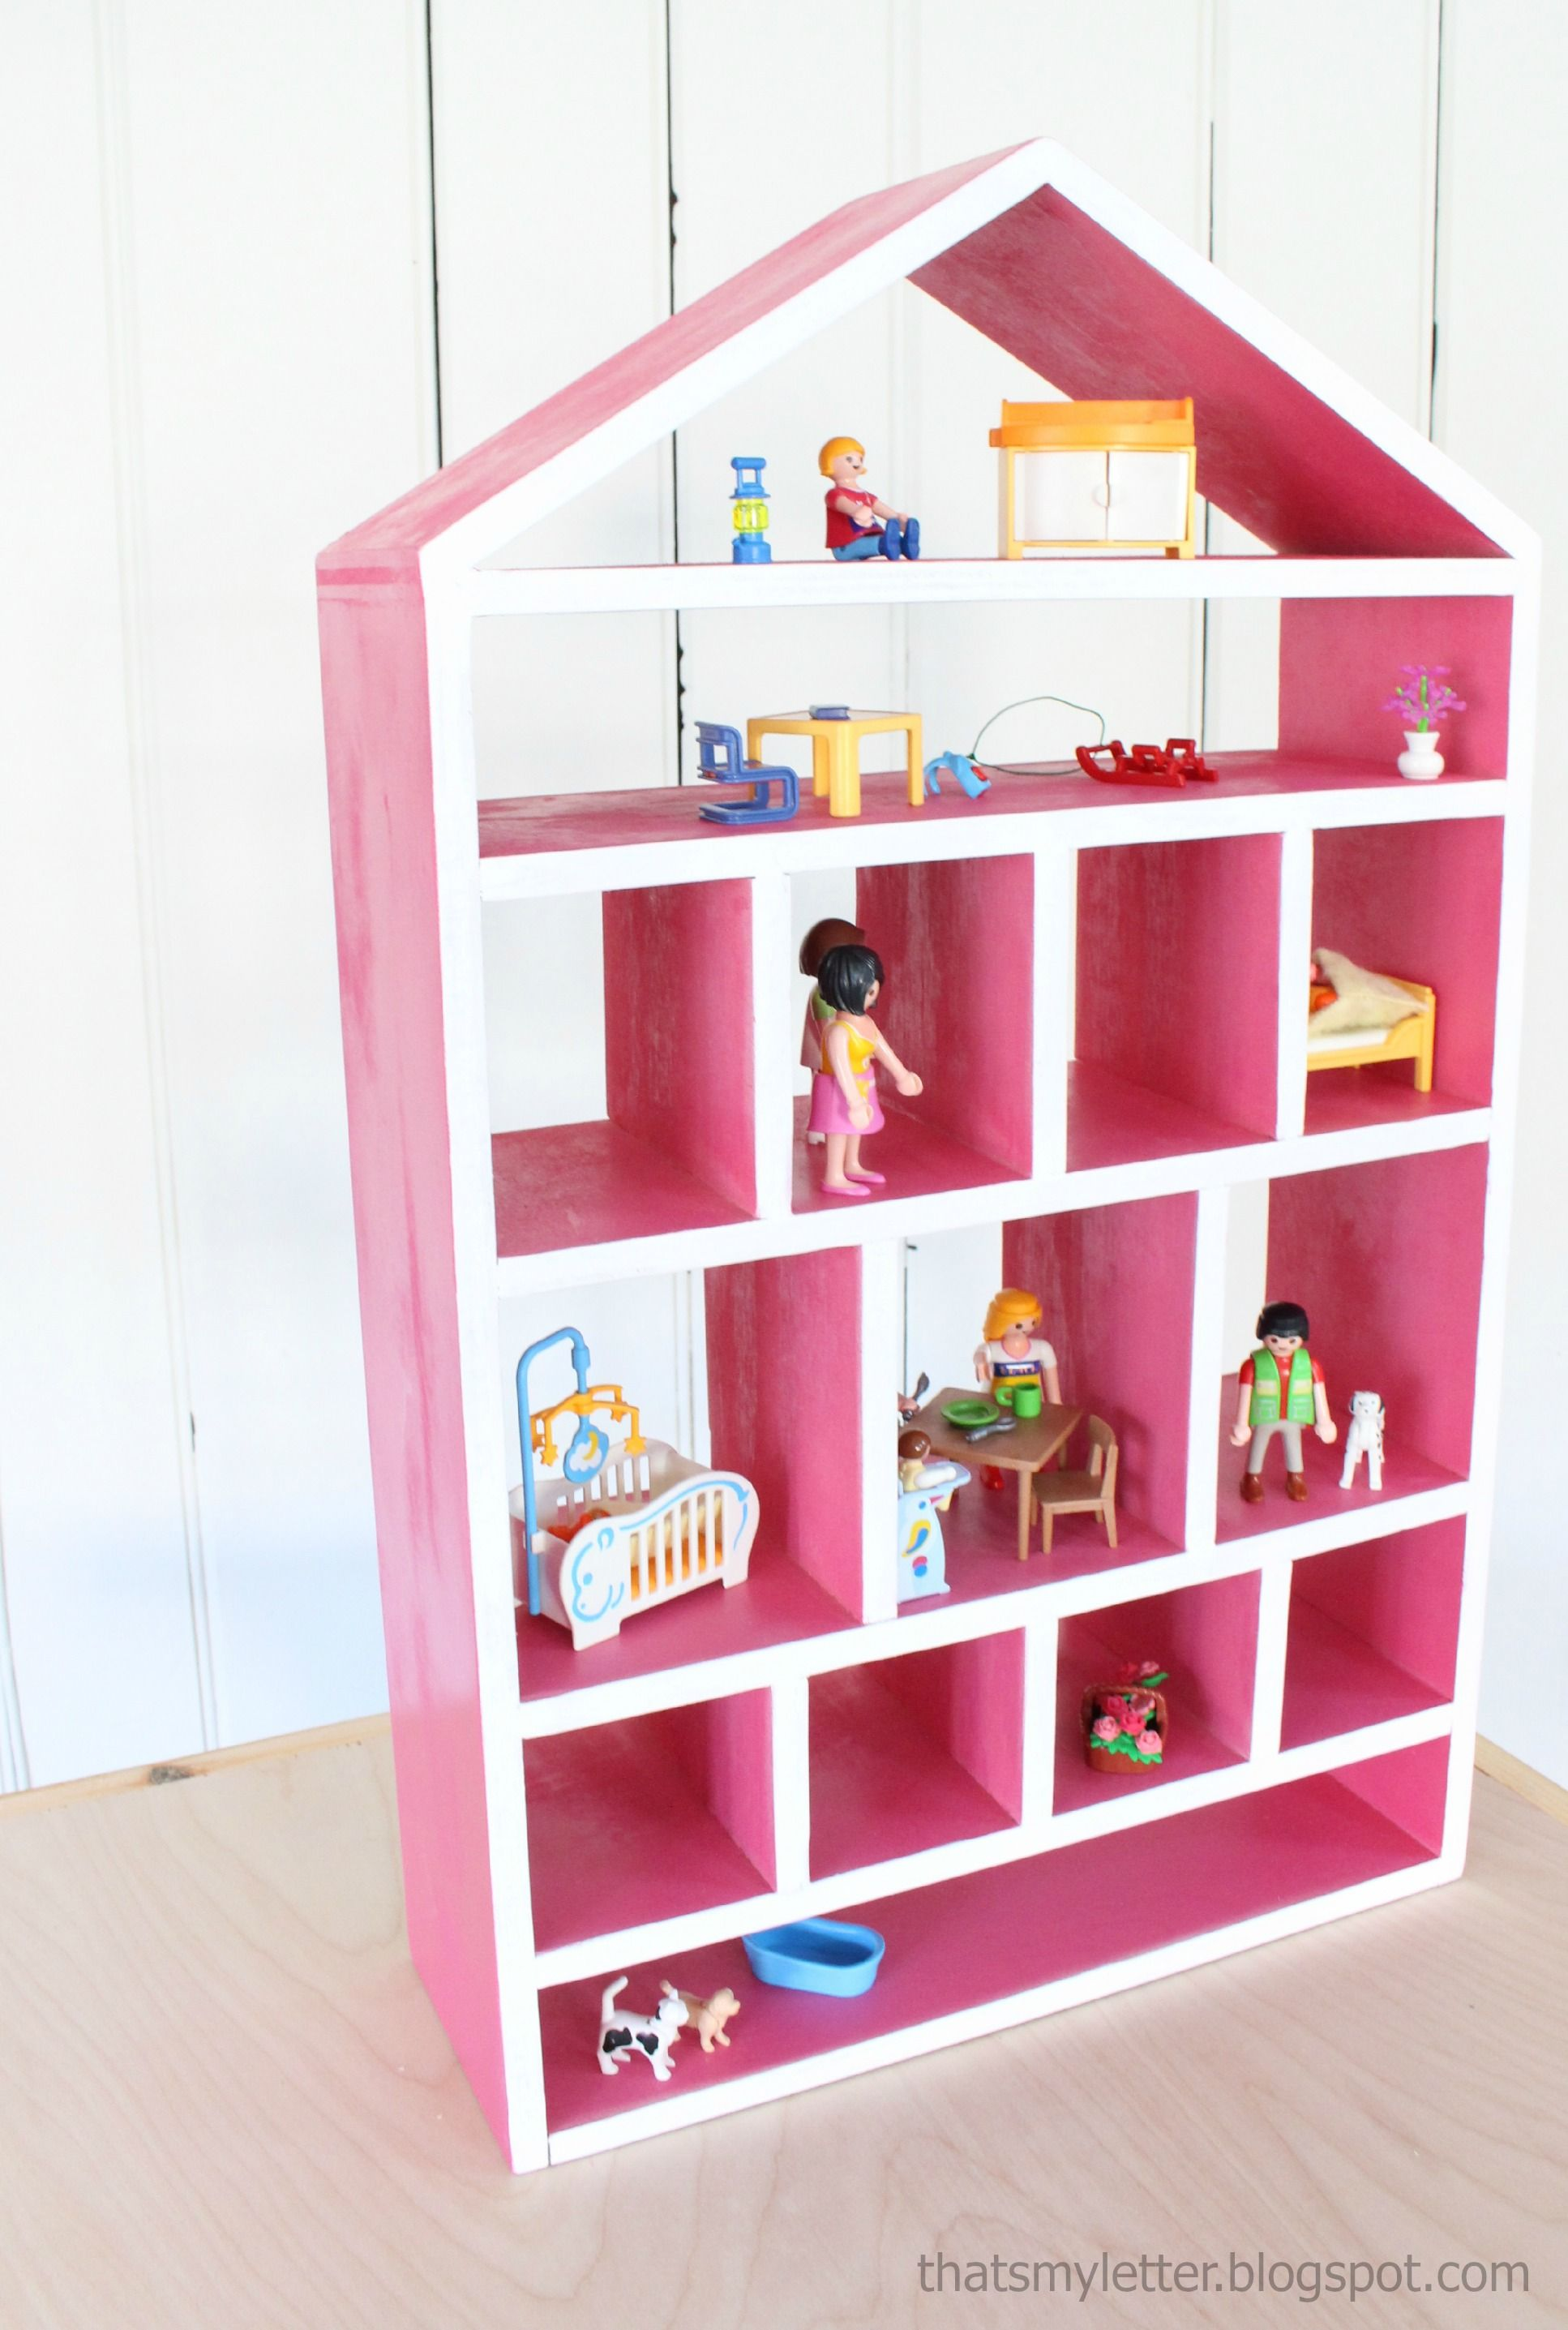 Build a Dollhouse Wall Shelf Free and Easy DIY Project